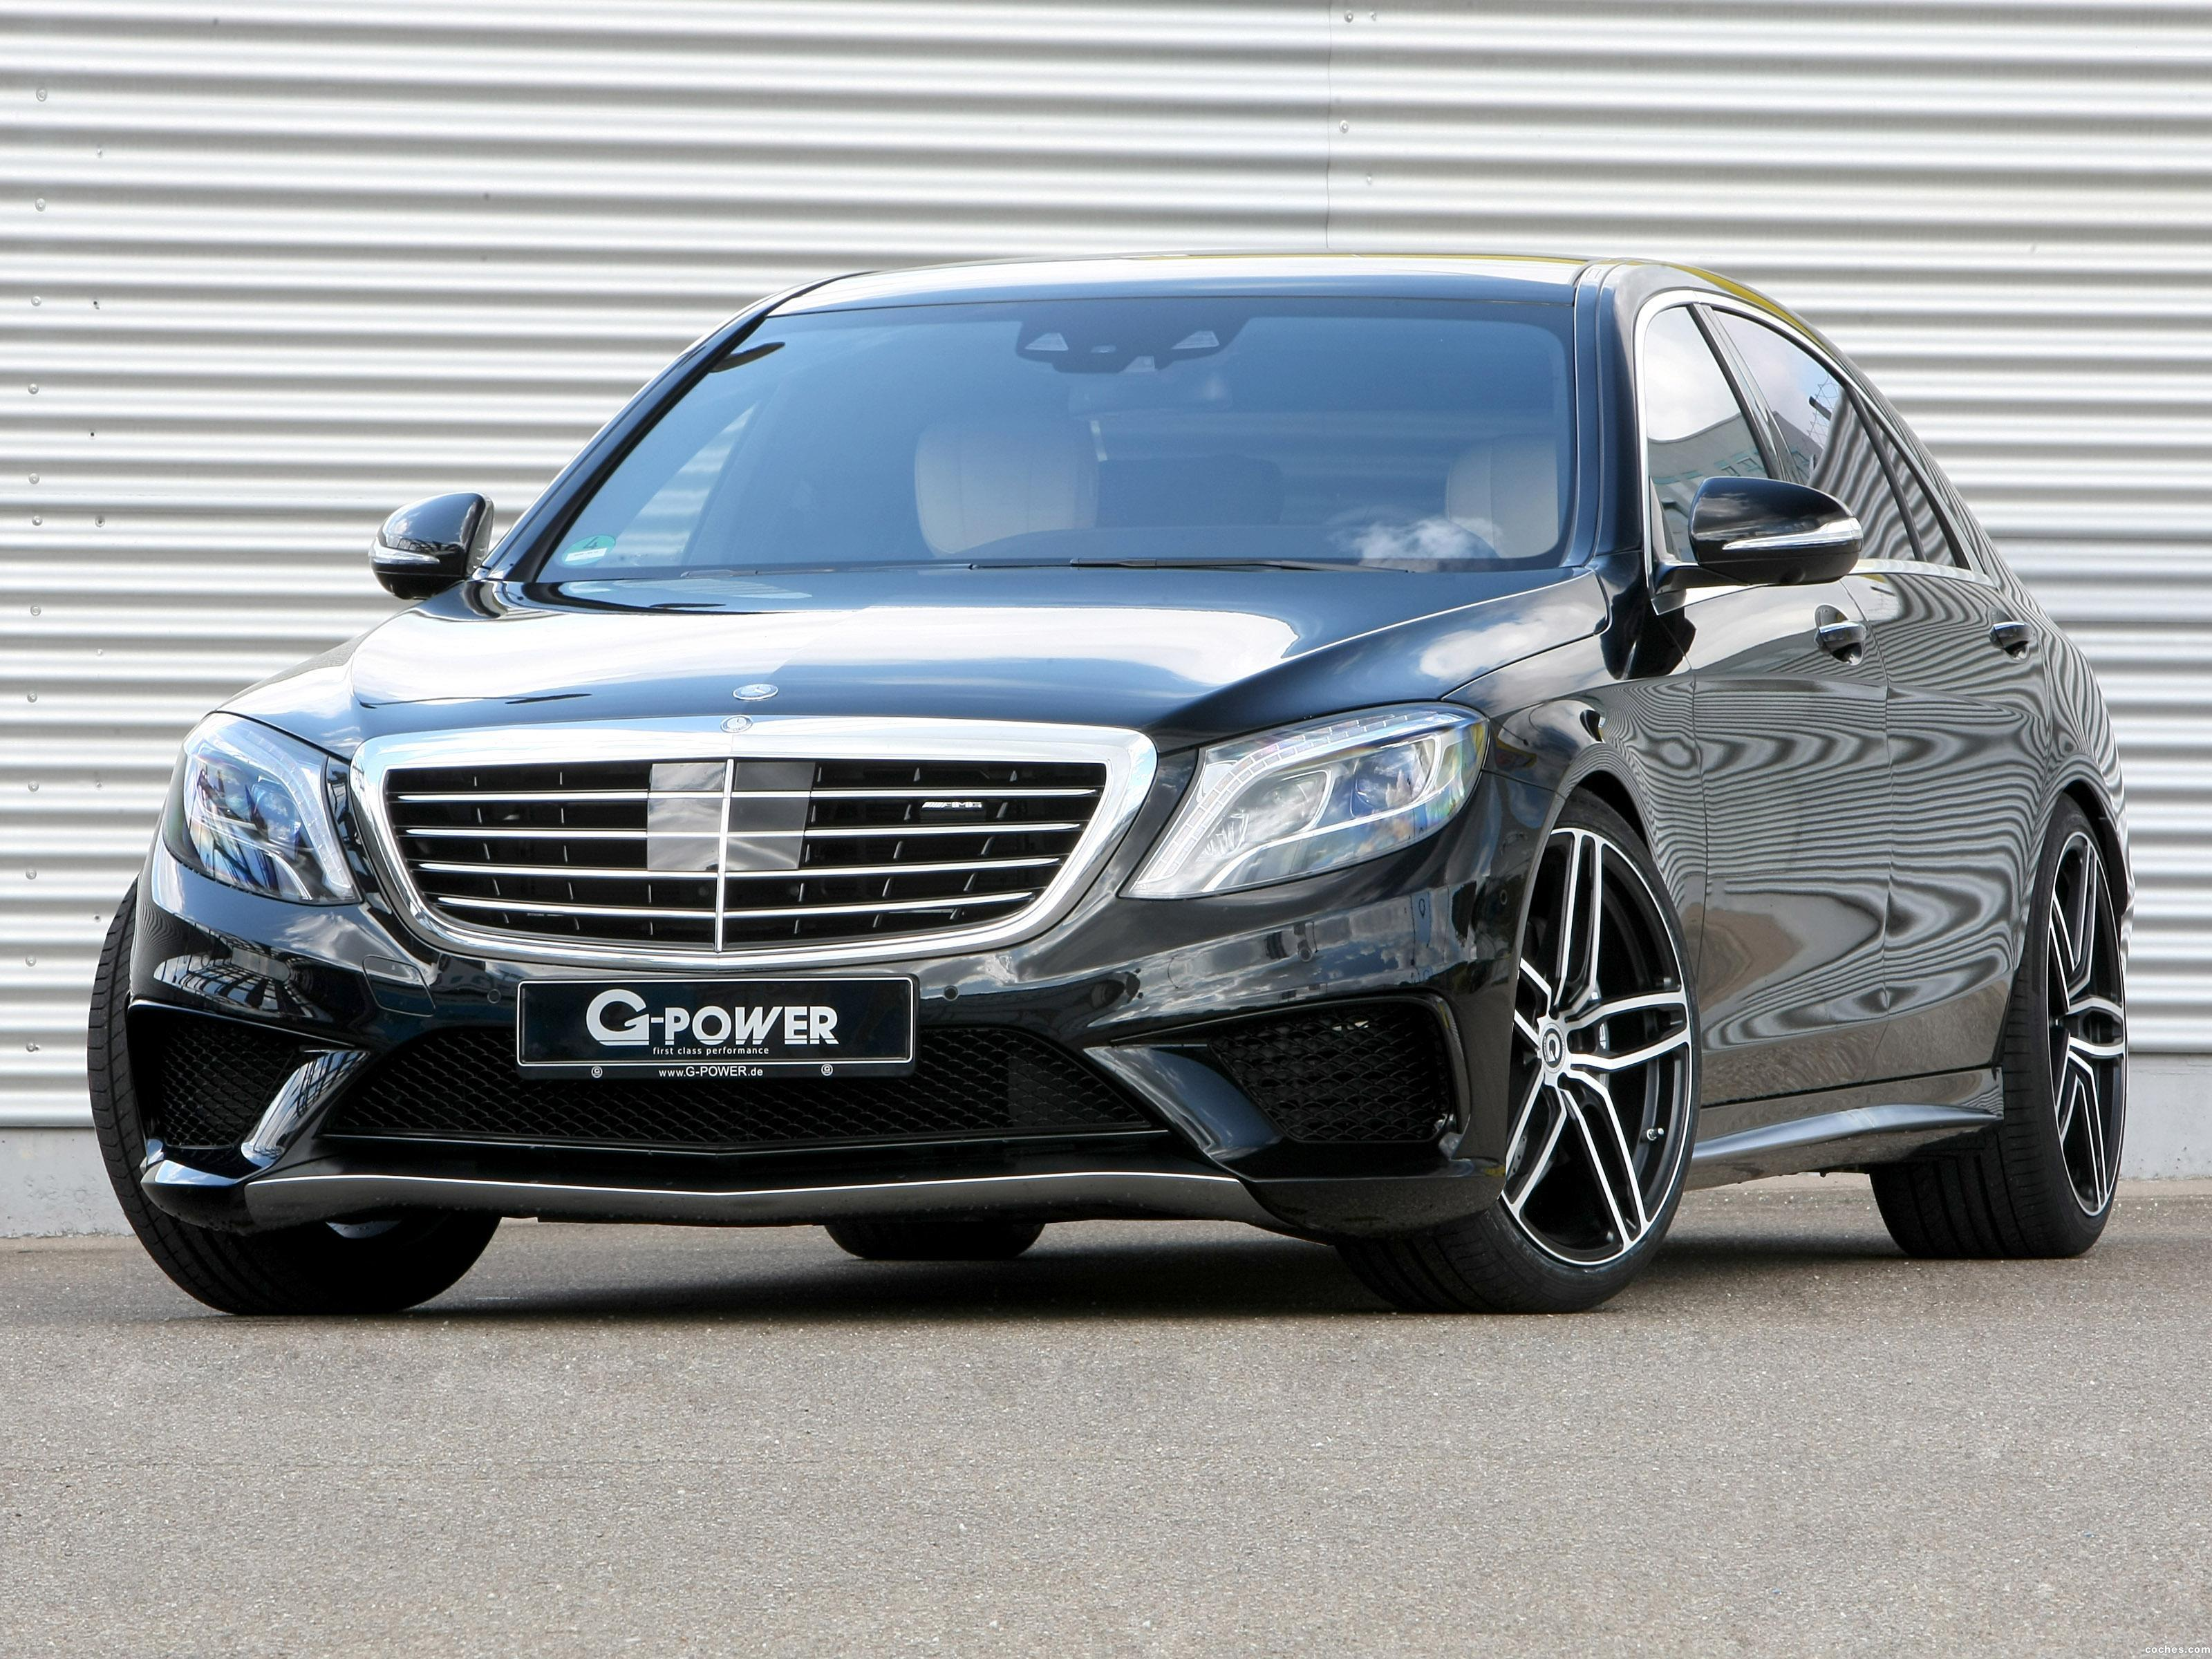 Foto 0 de G-power Mercedes AMG S63 Lang V222 2015